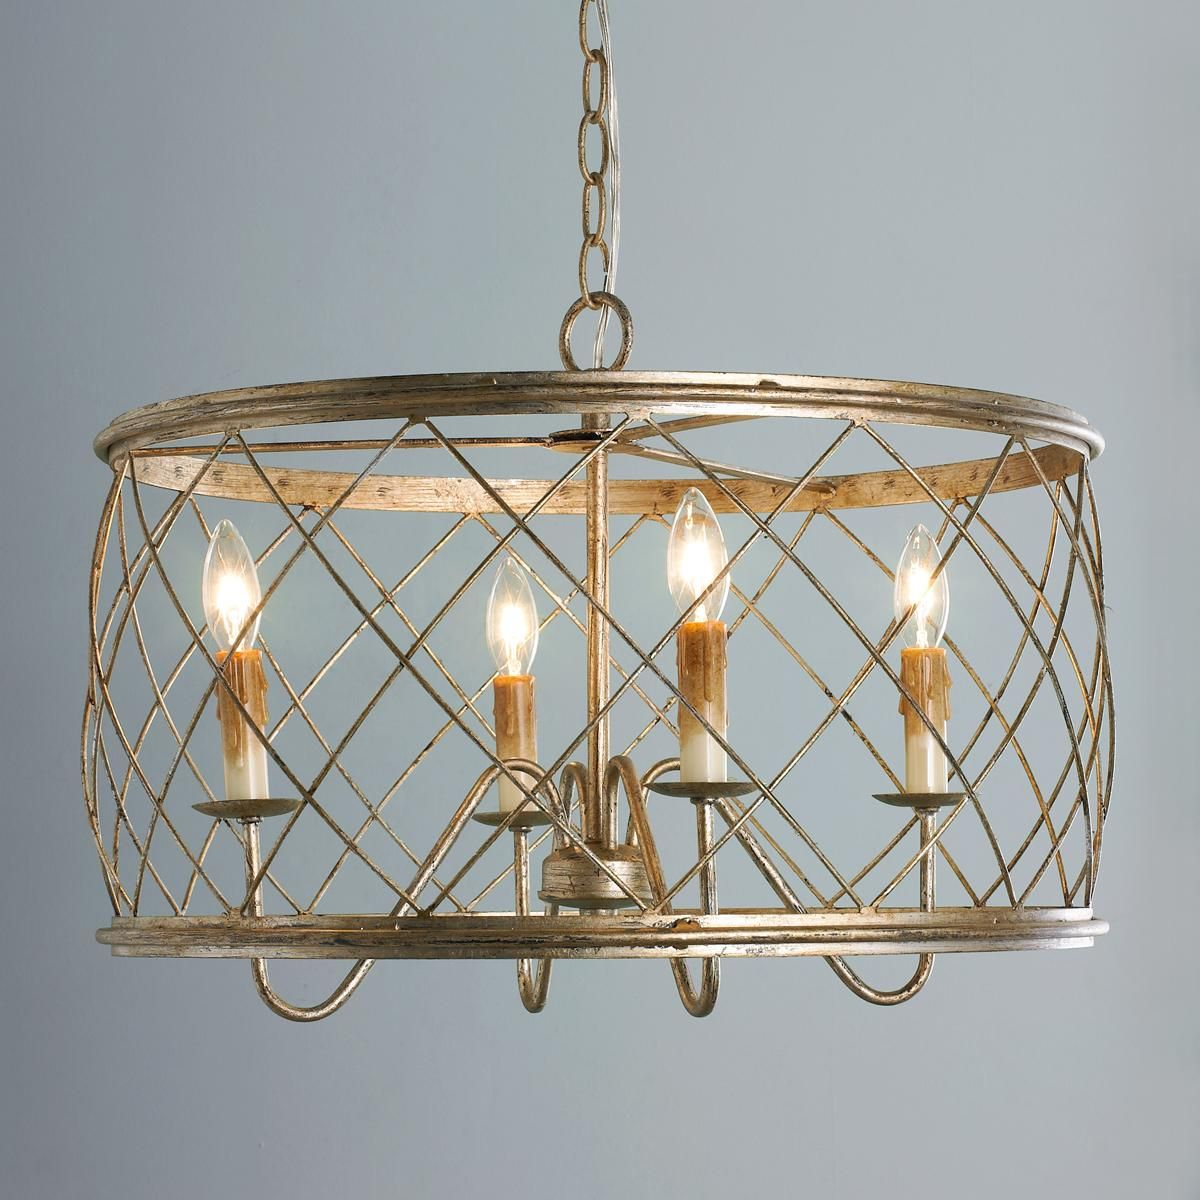 Trellis Cage Drum Chandelier - Small